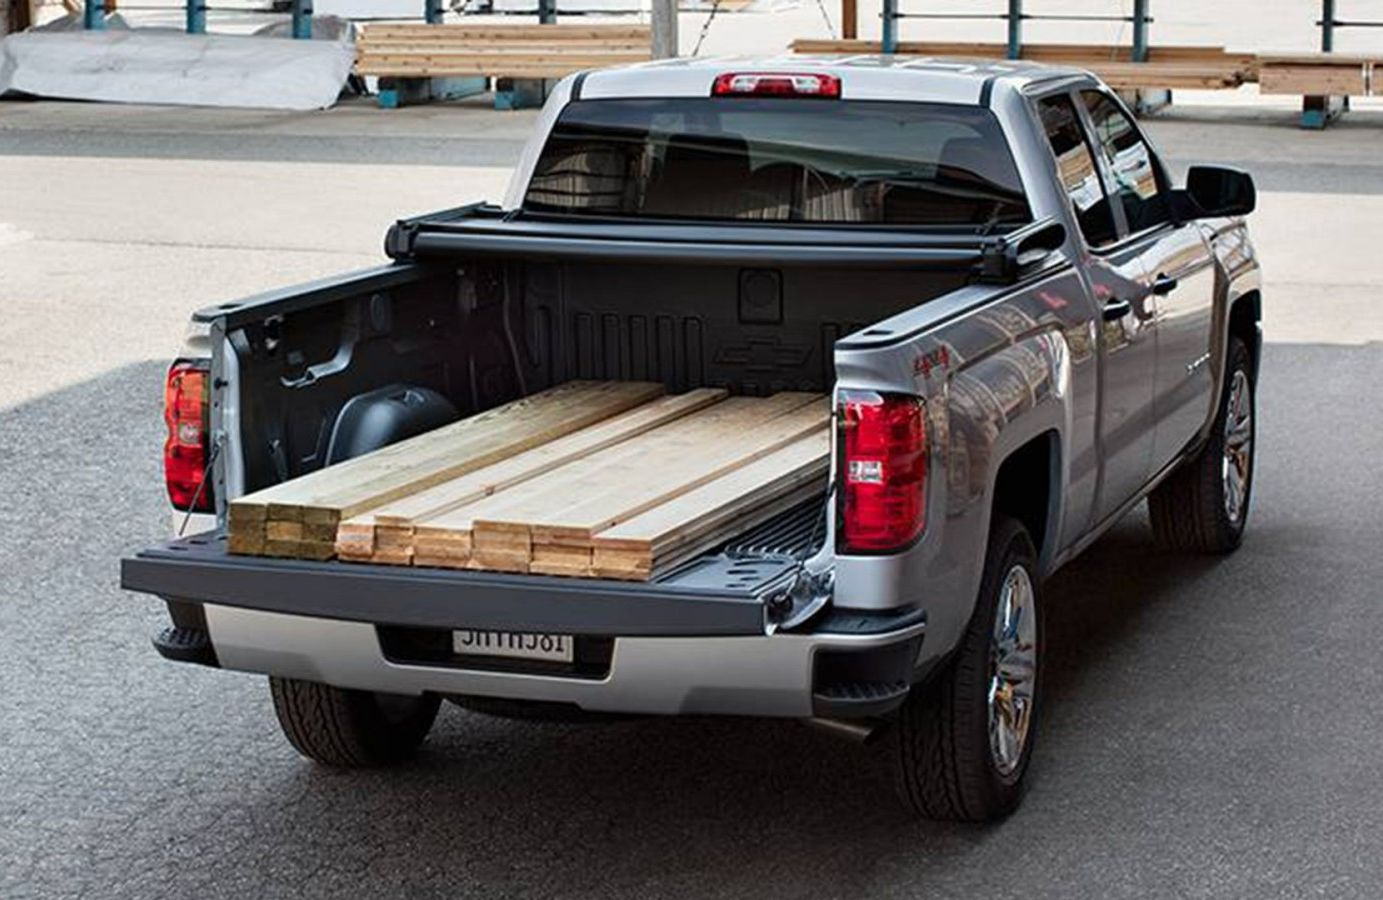 The Bed of the Silverado 1500 is Tough!